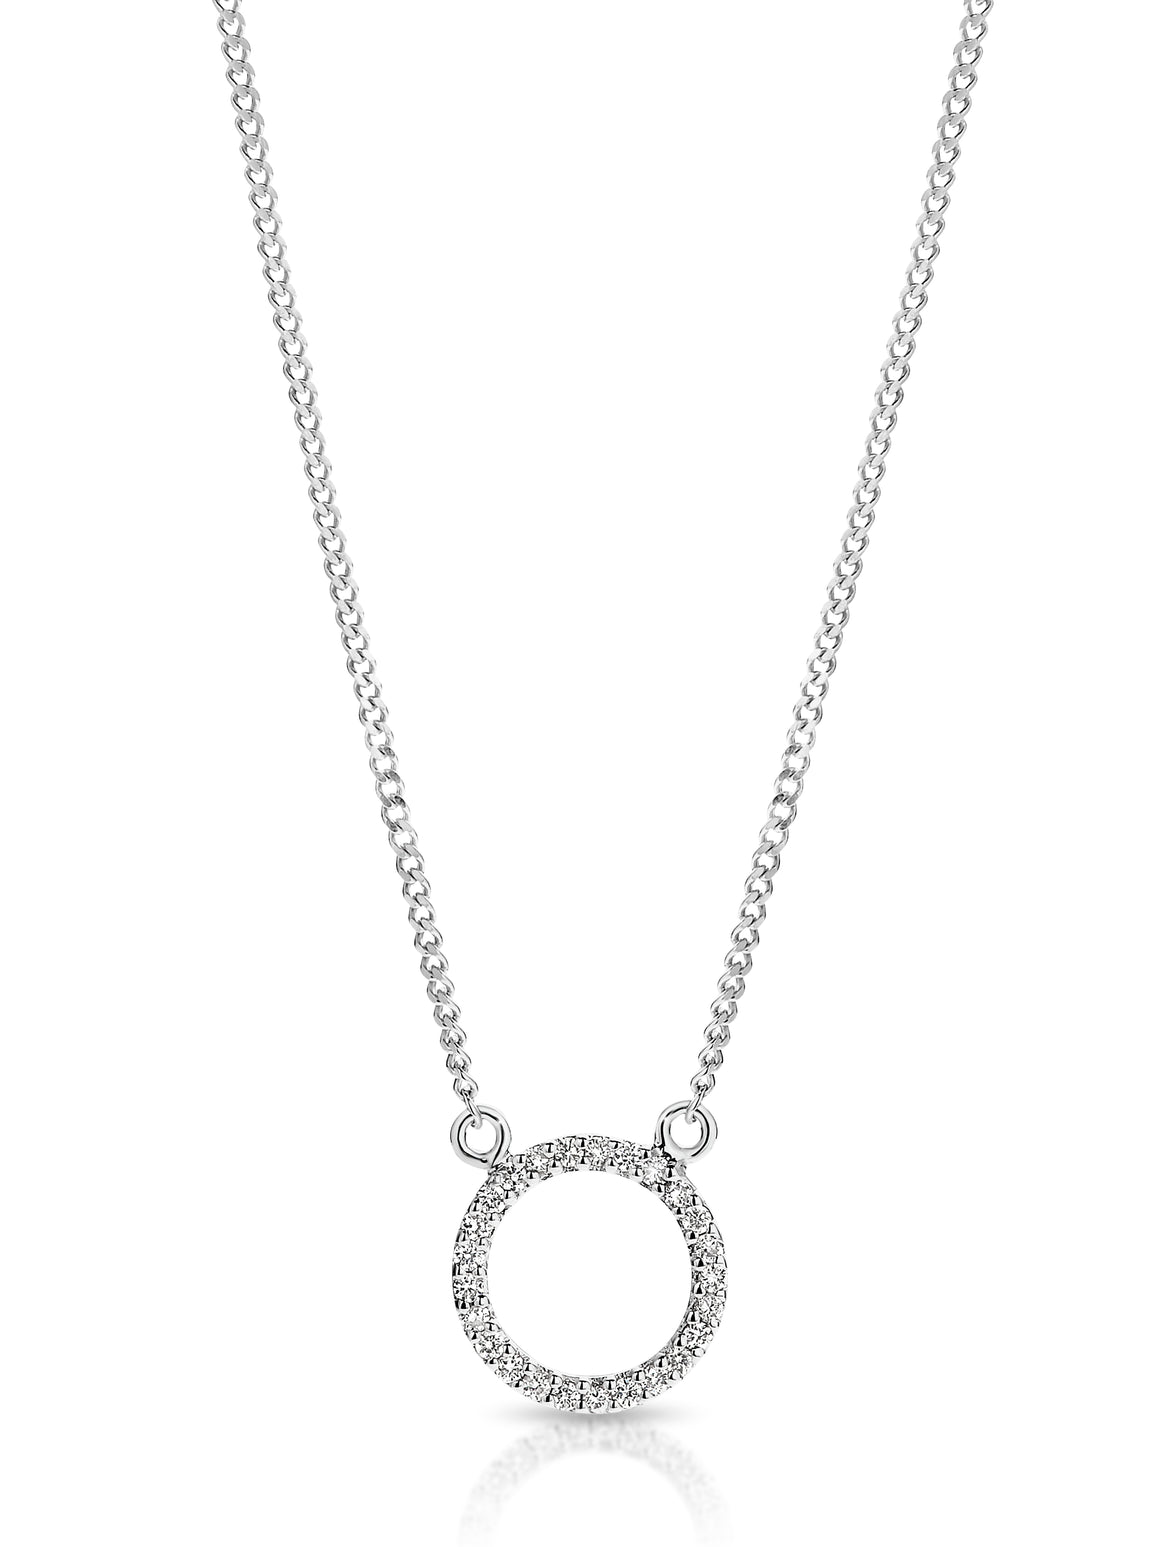 9ct Gold and Diamond 'Moon' Necklace - Gemma Stone  ABN:51 621 127 866